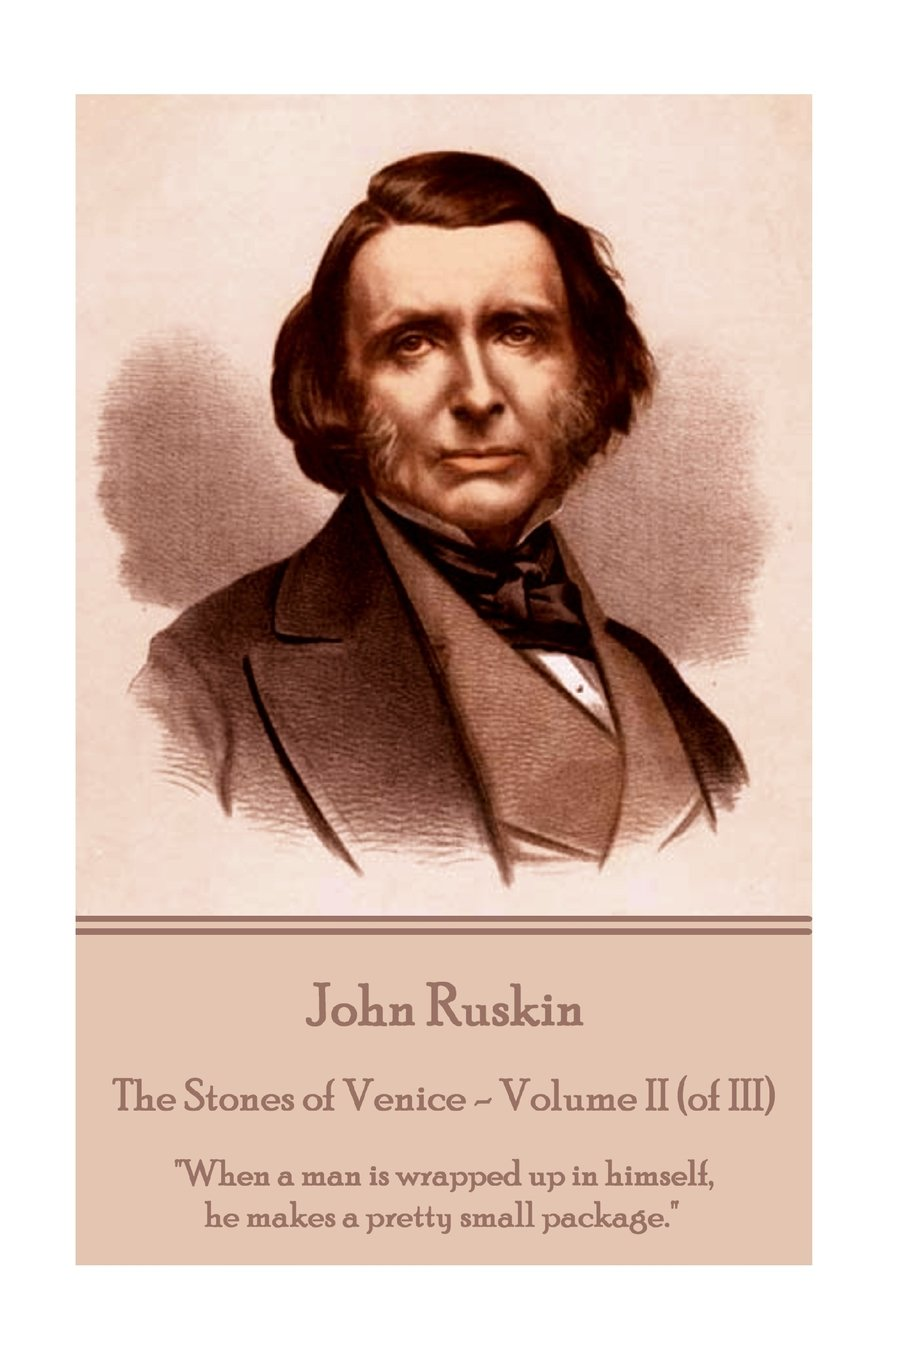 John Ruskin The Stones Of Venice Volume Ii Of Iii When A Man Is Wrapped Up In Himself He Makes A Pretty Small Package Ruskin John 9781787372818 Amazon Com Books